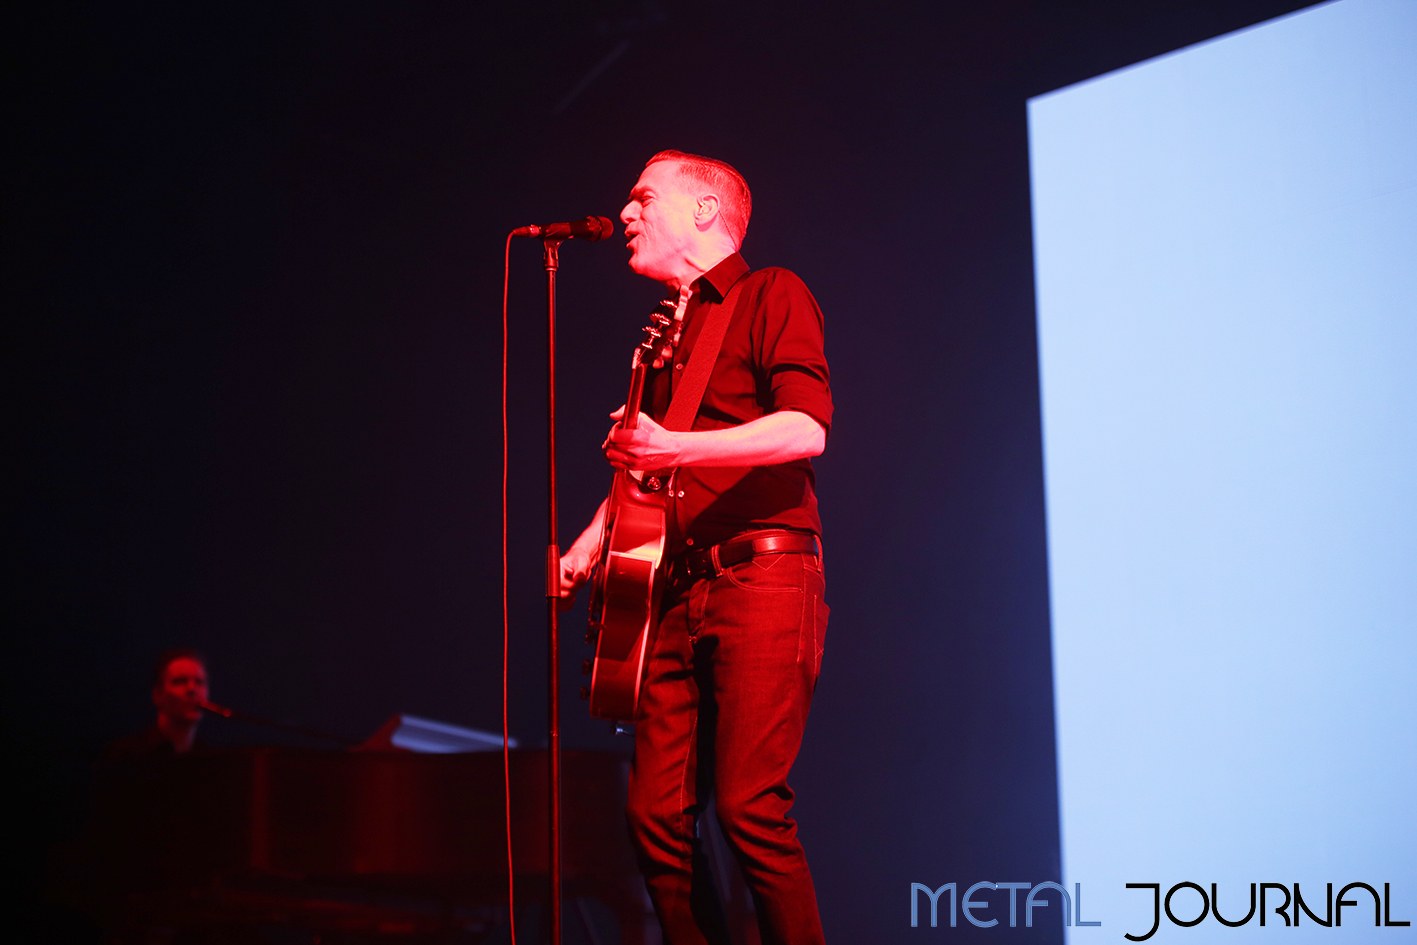 bryan adams - metal journal - BEC Bilbao - pic 3